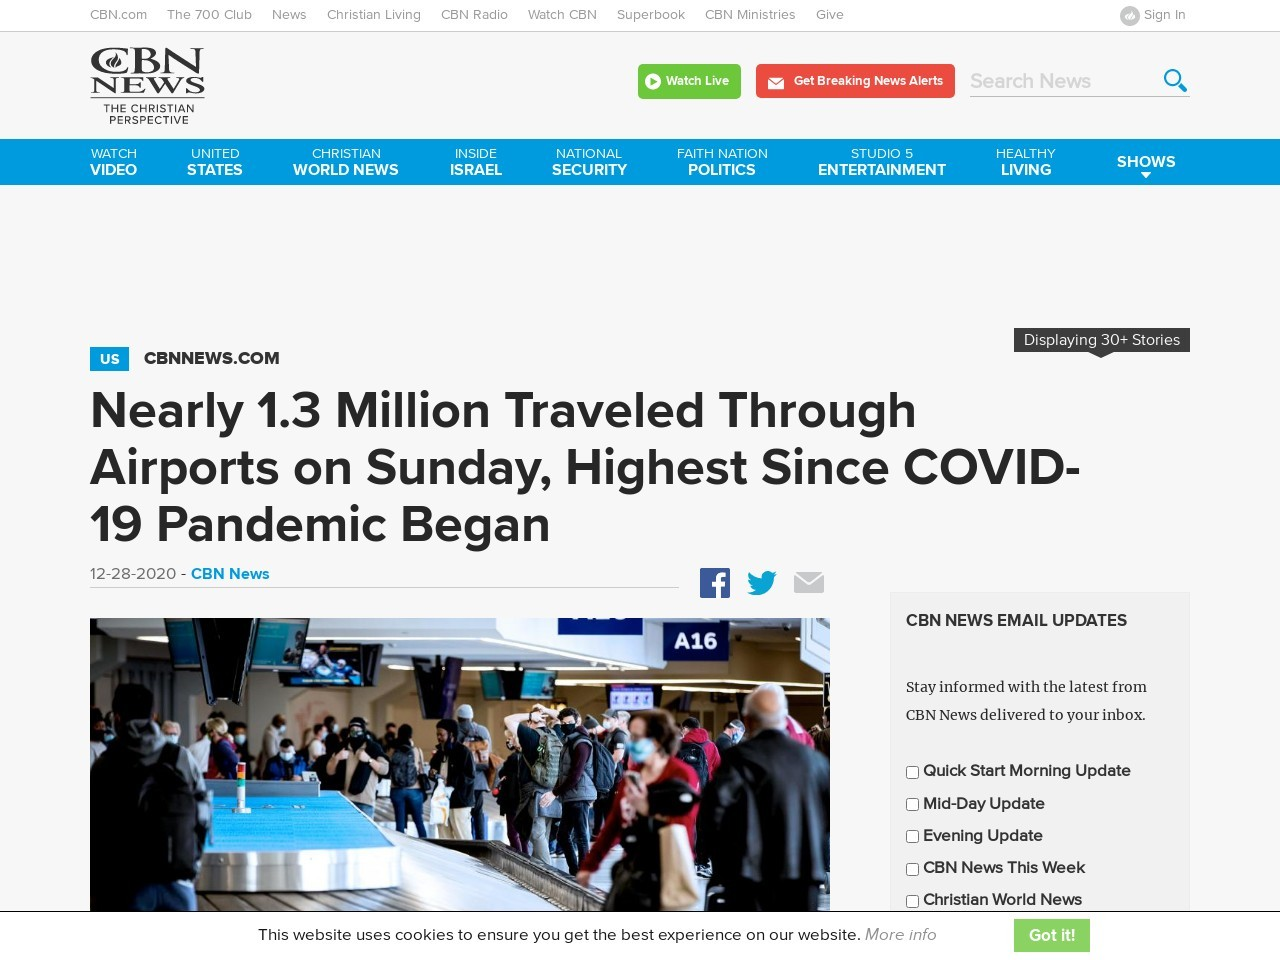 Nearly 1.3 Million Traveled Through Airports on Sunday, Highest Since COVID-19 Pandemic Began